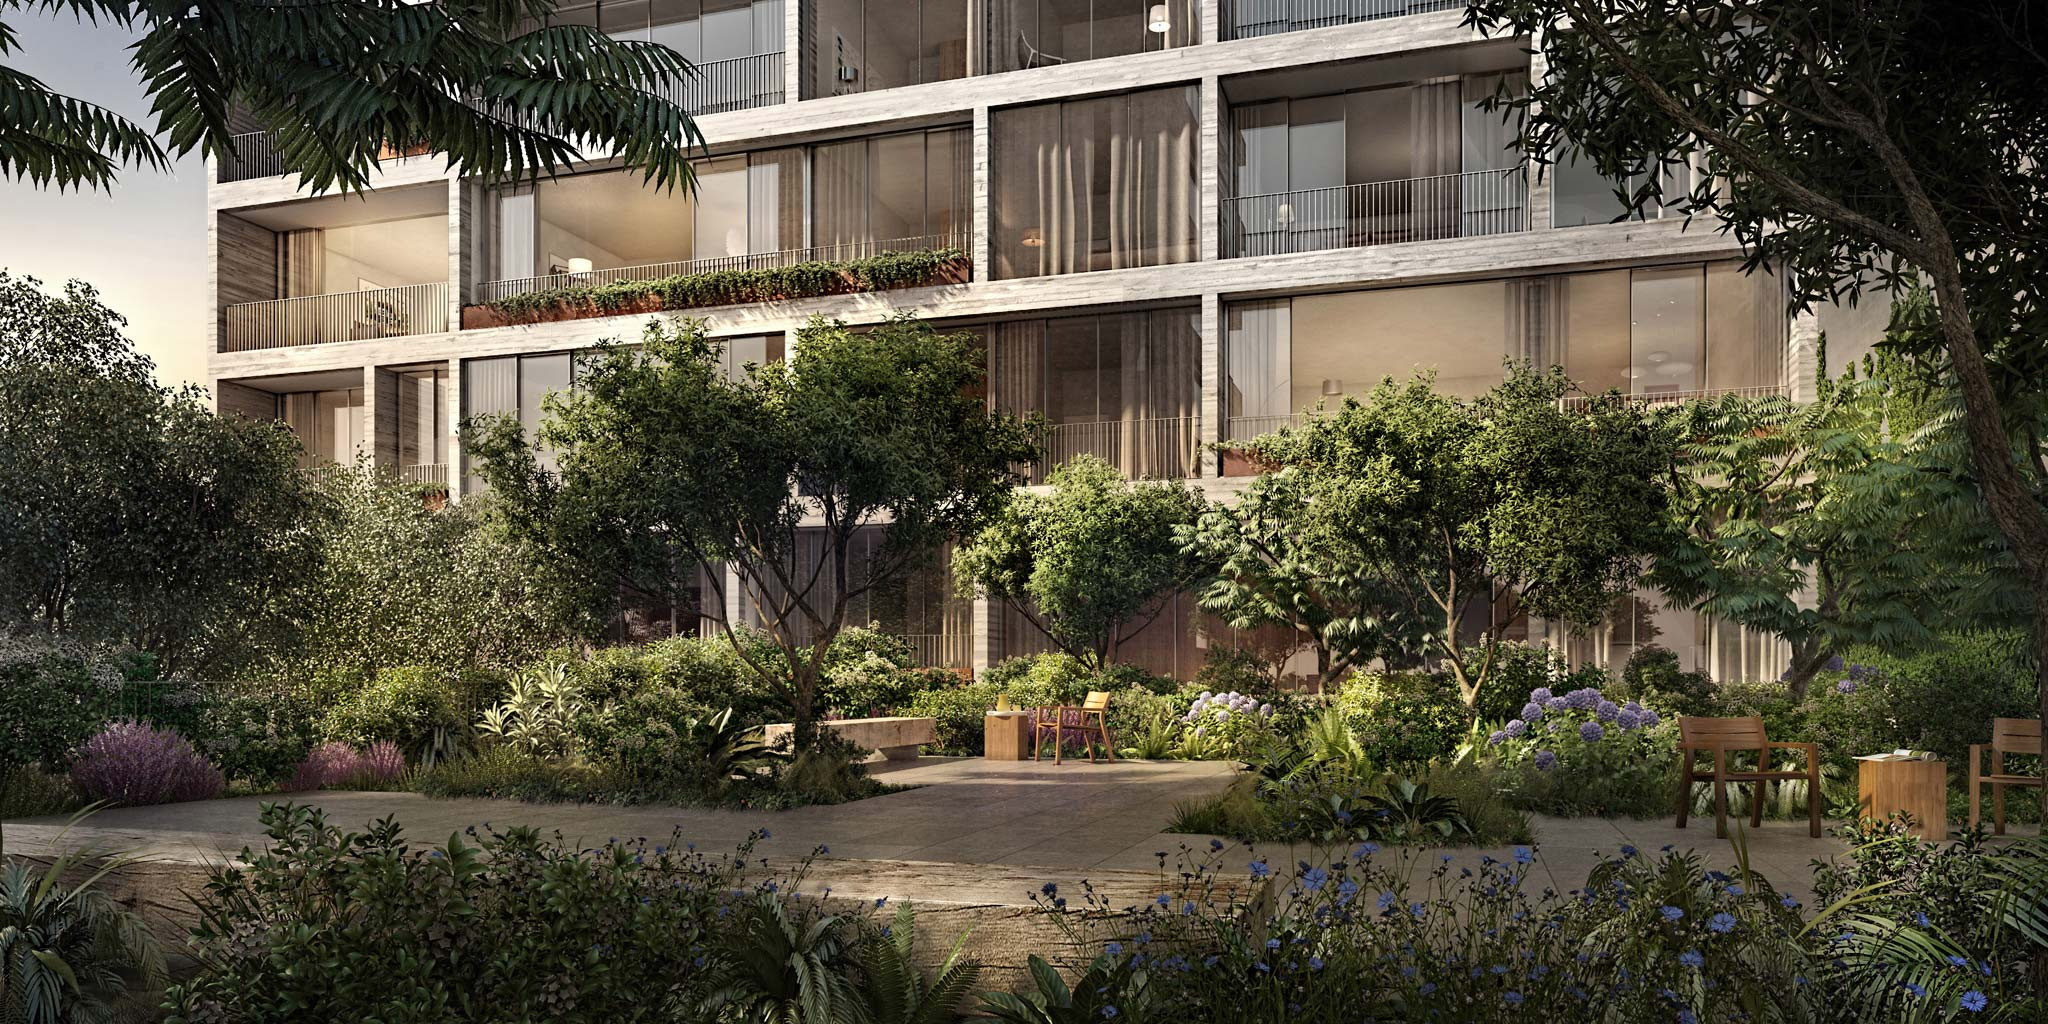 Second level garden at Jardim Condominium in New York City. Open patio with tables, seats and a bench surrounded by greenery.